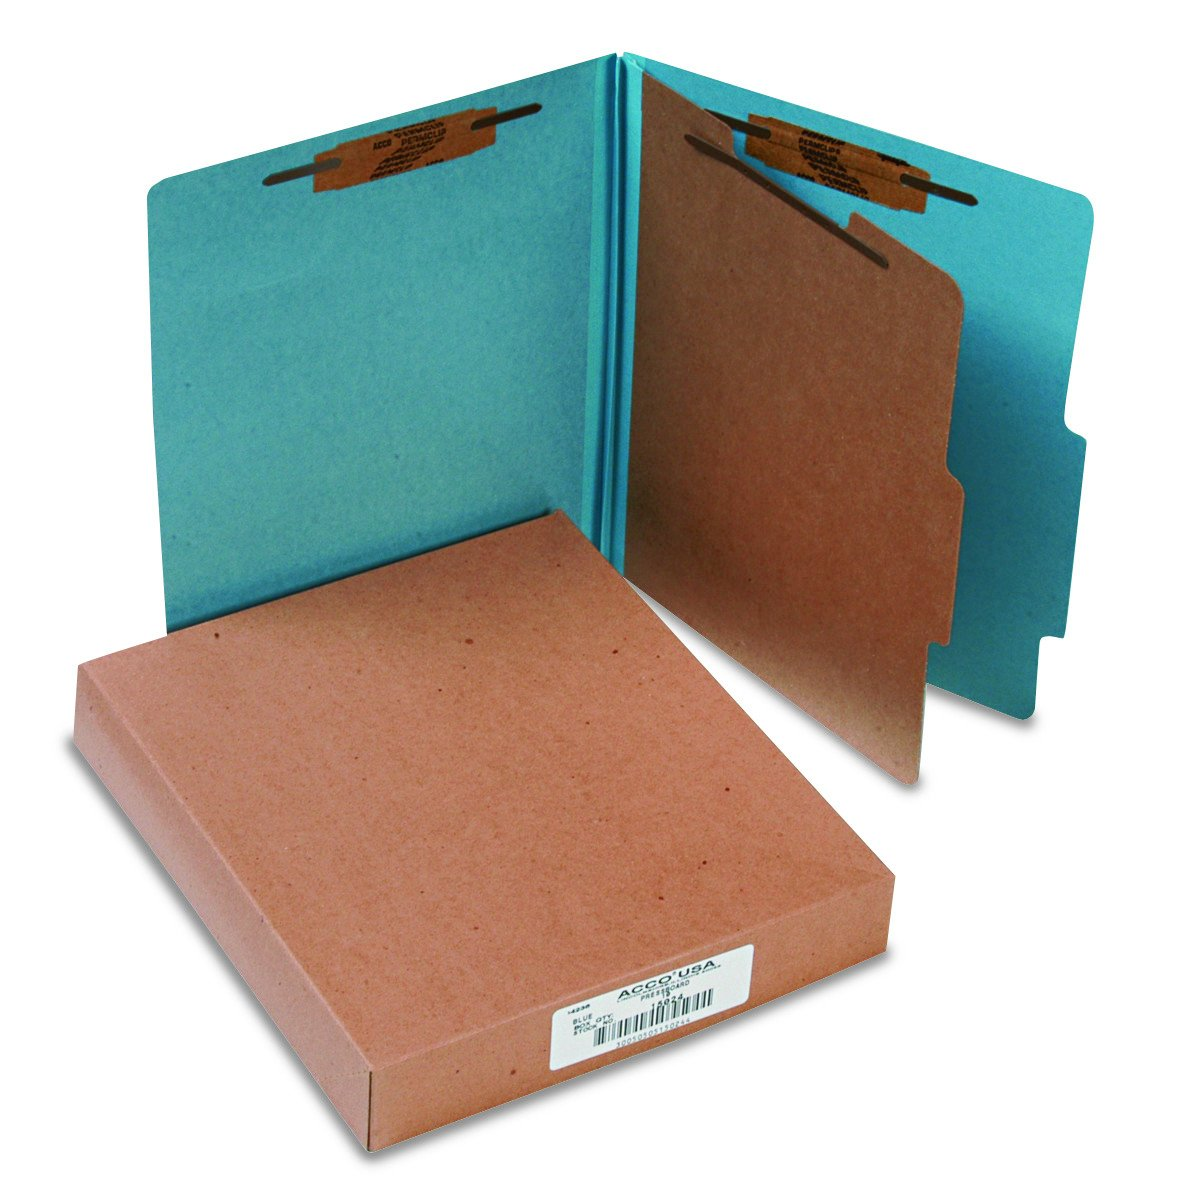 ACCO Classification Folders with Fasteners, Pressboard, 4-Part, Letter Size, Blue, 10 per Box (15024) by ACCO